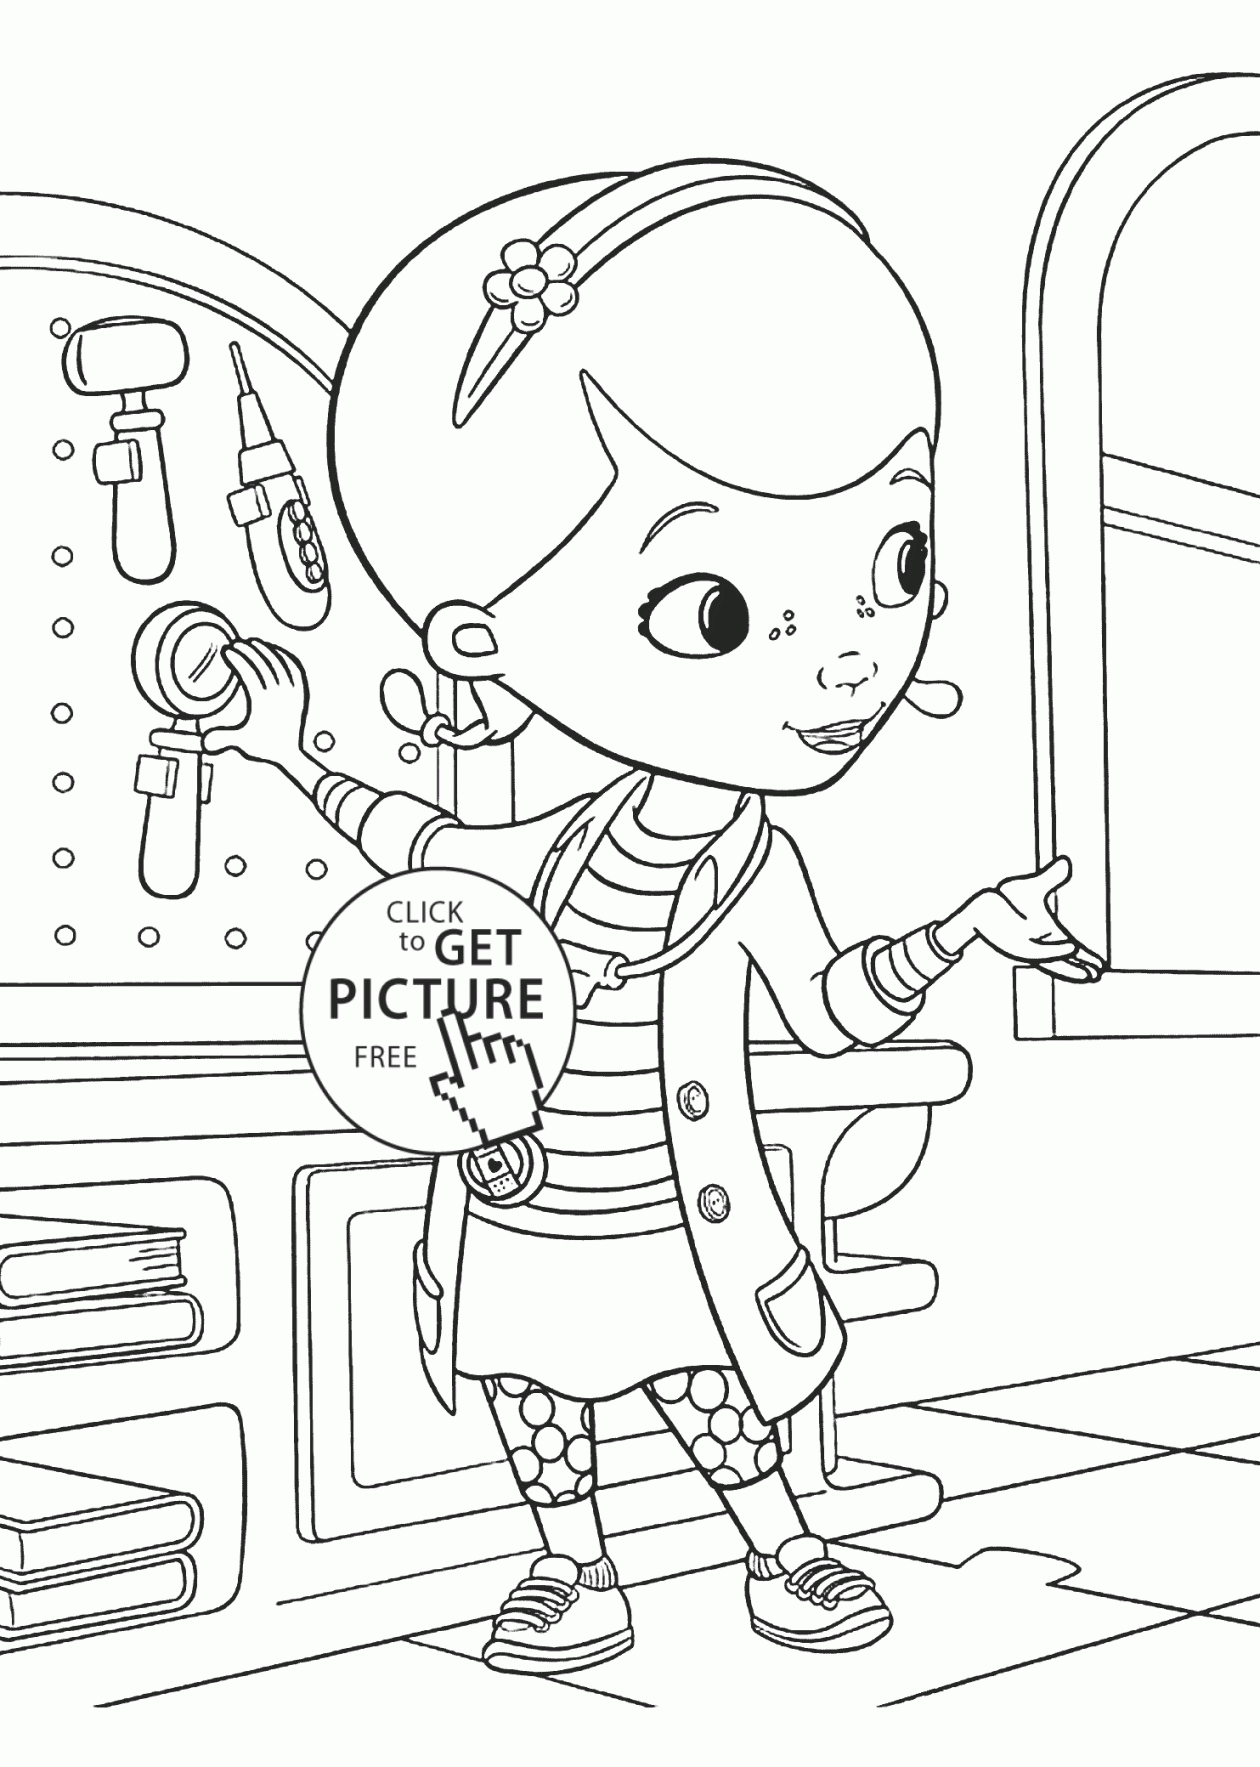 1260x1767 Free Printable Doctor Who Coloring Pages Collection Coloring